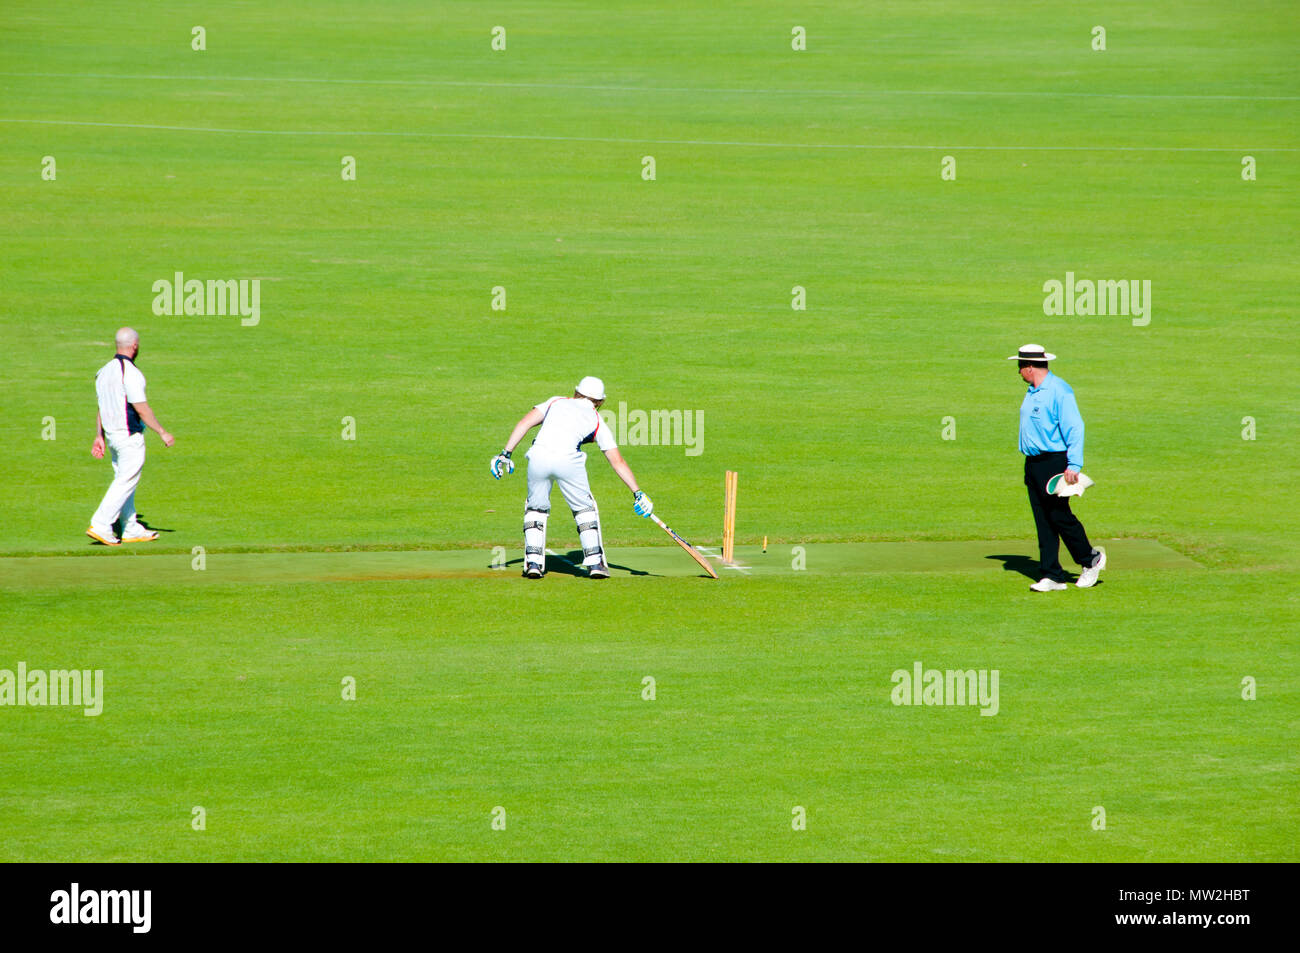 Cricket Field Game - Stock Image